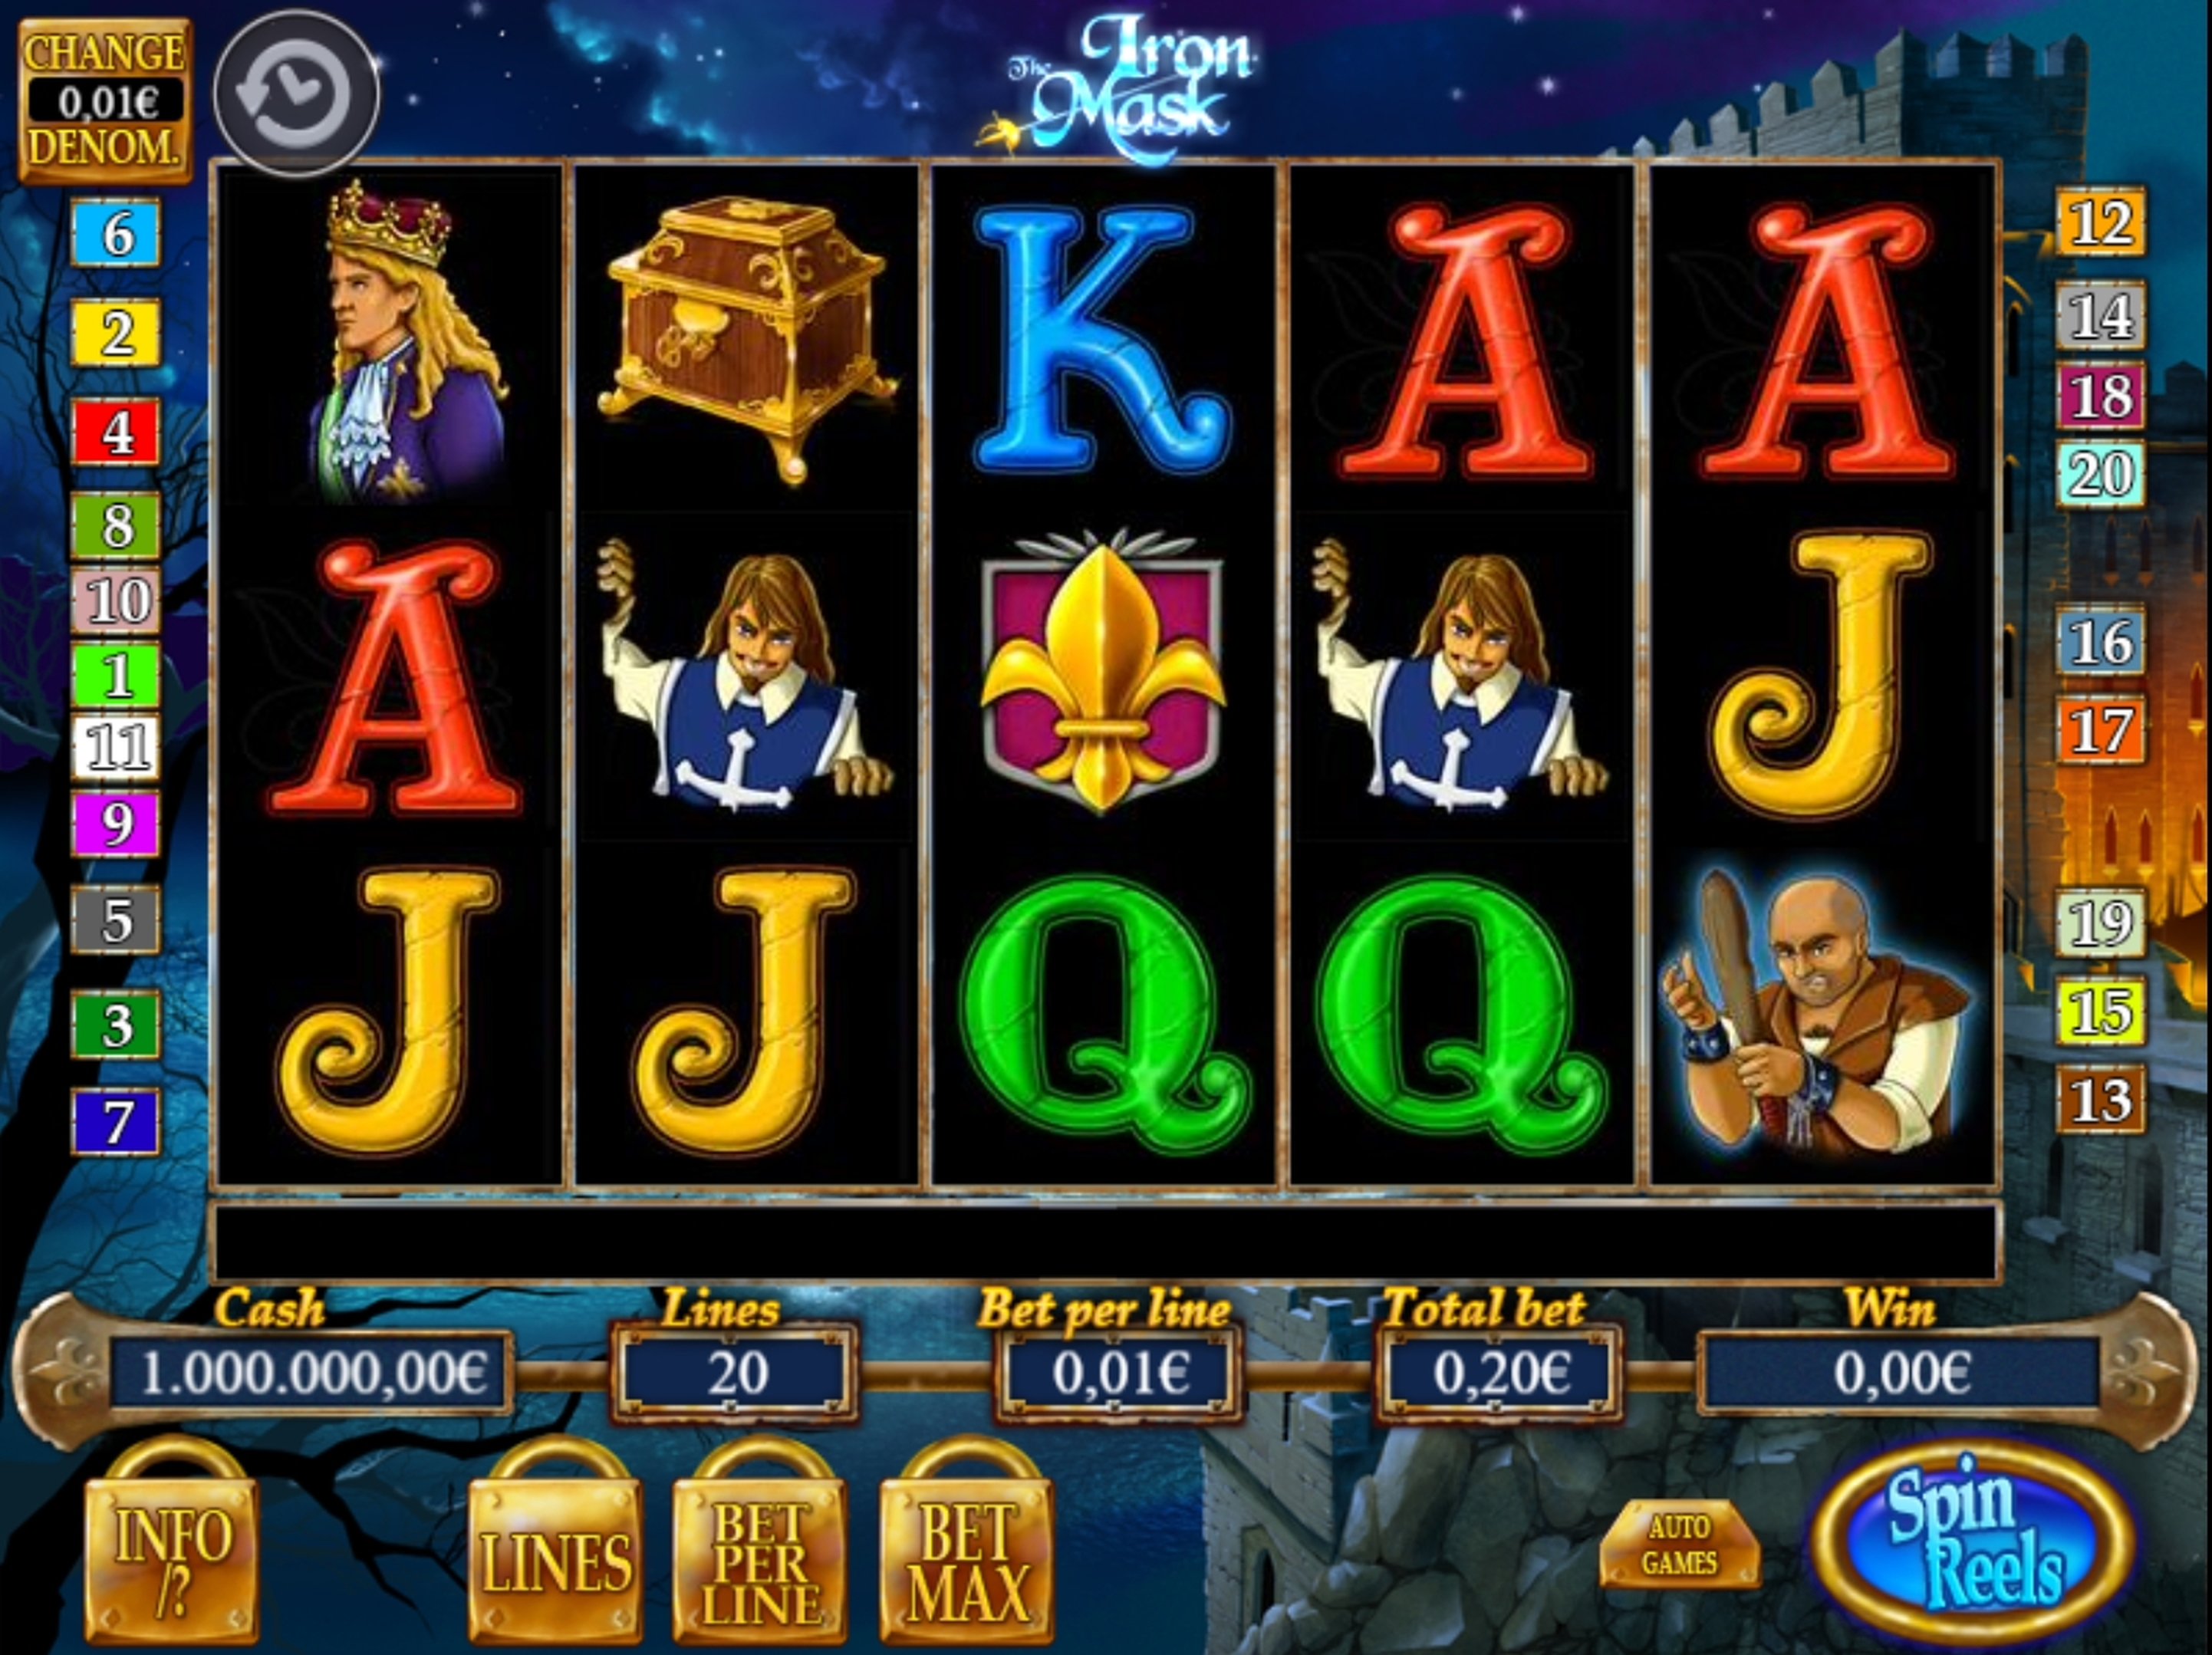 Reels in The Iron Mask Slot Game by RFranco Group